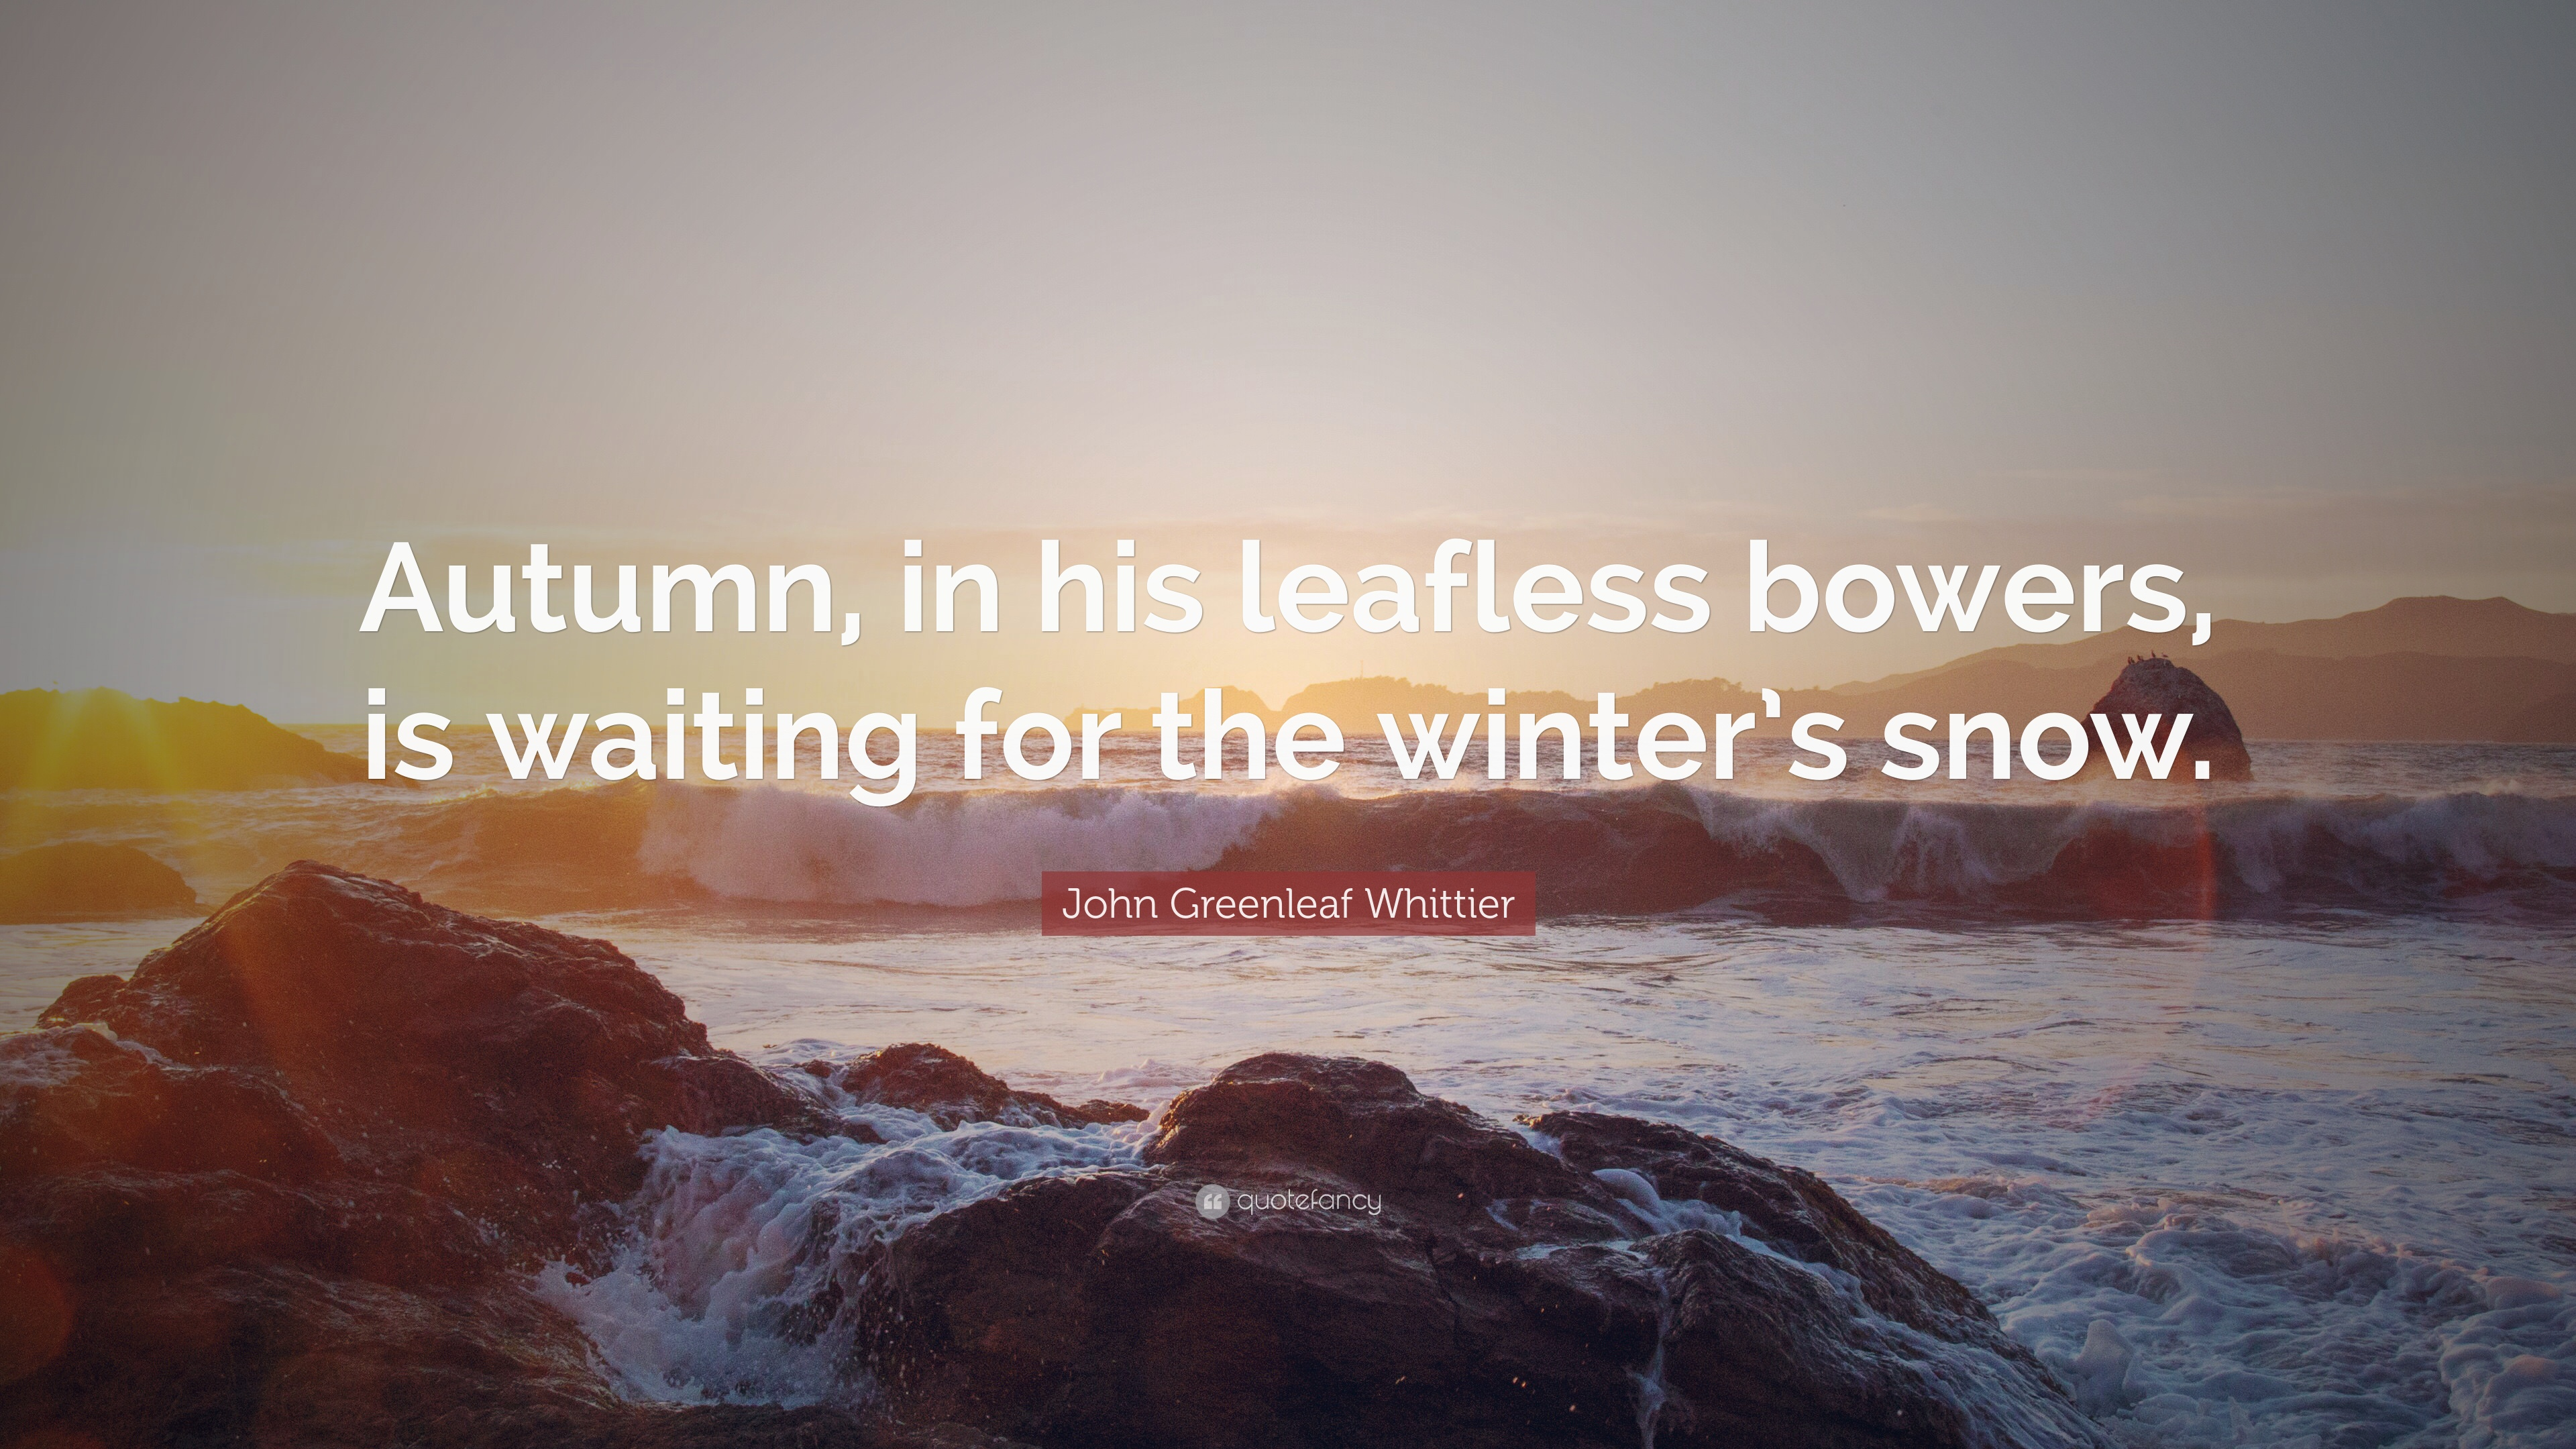 Superieur John Greenleaf Whittier Quote: U201cAutumn, In His Leafless Bowers, Is Waiting  For